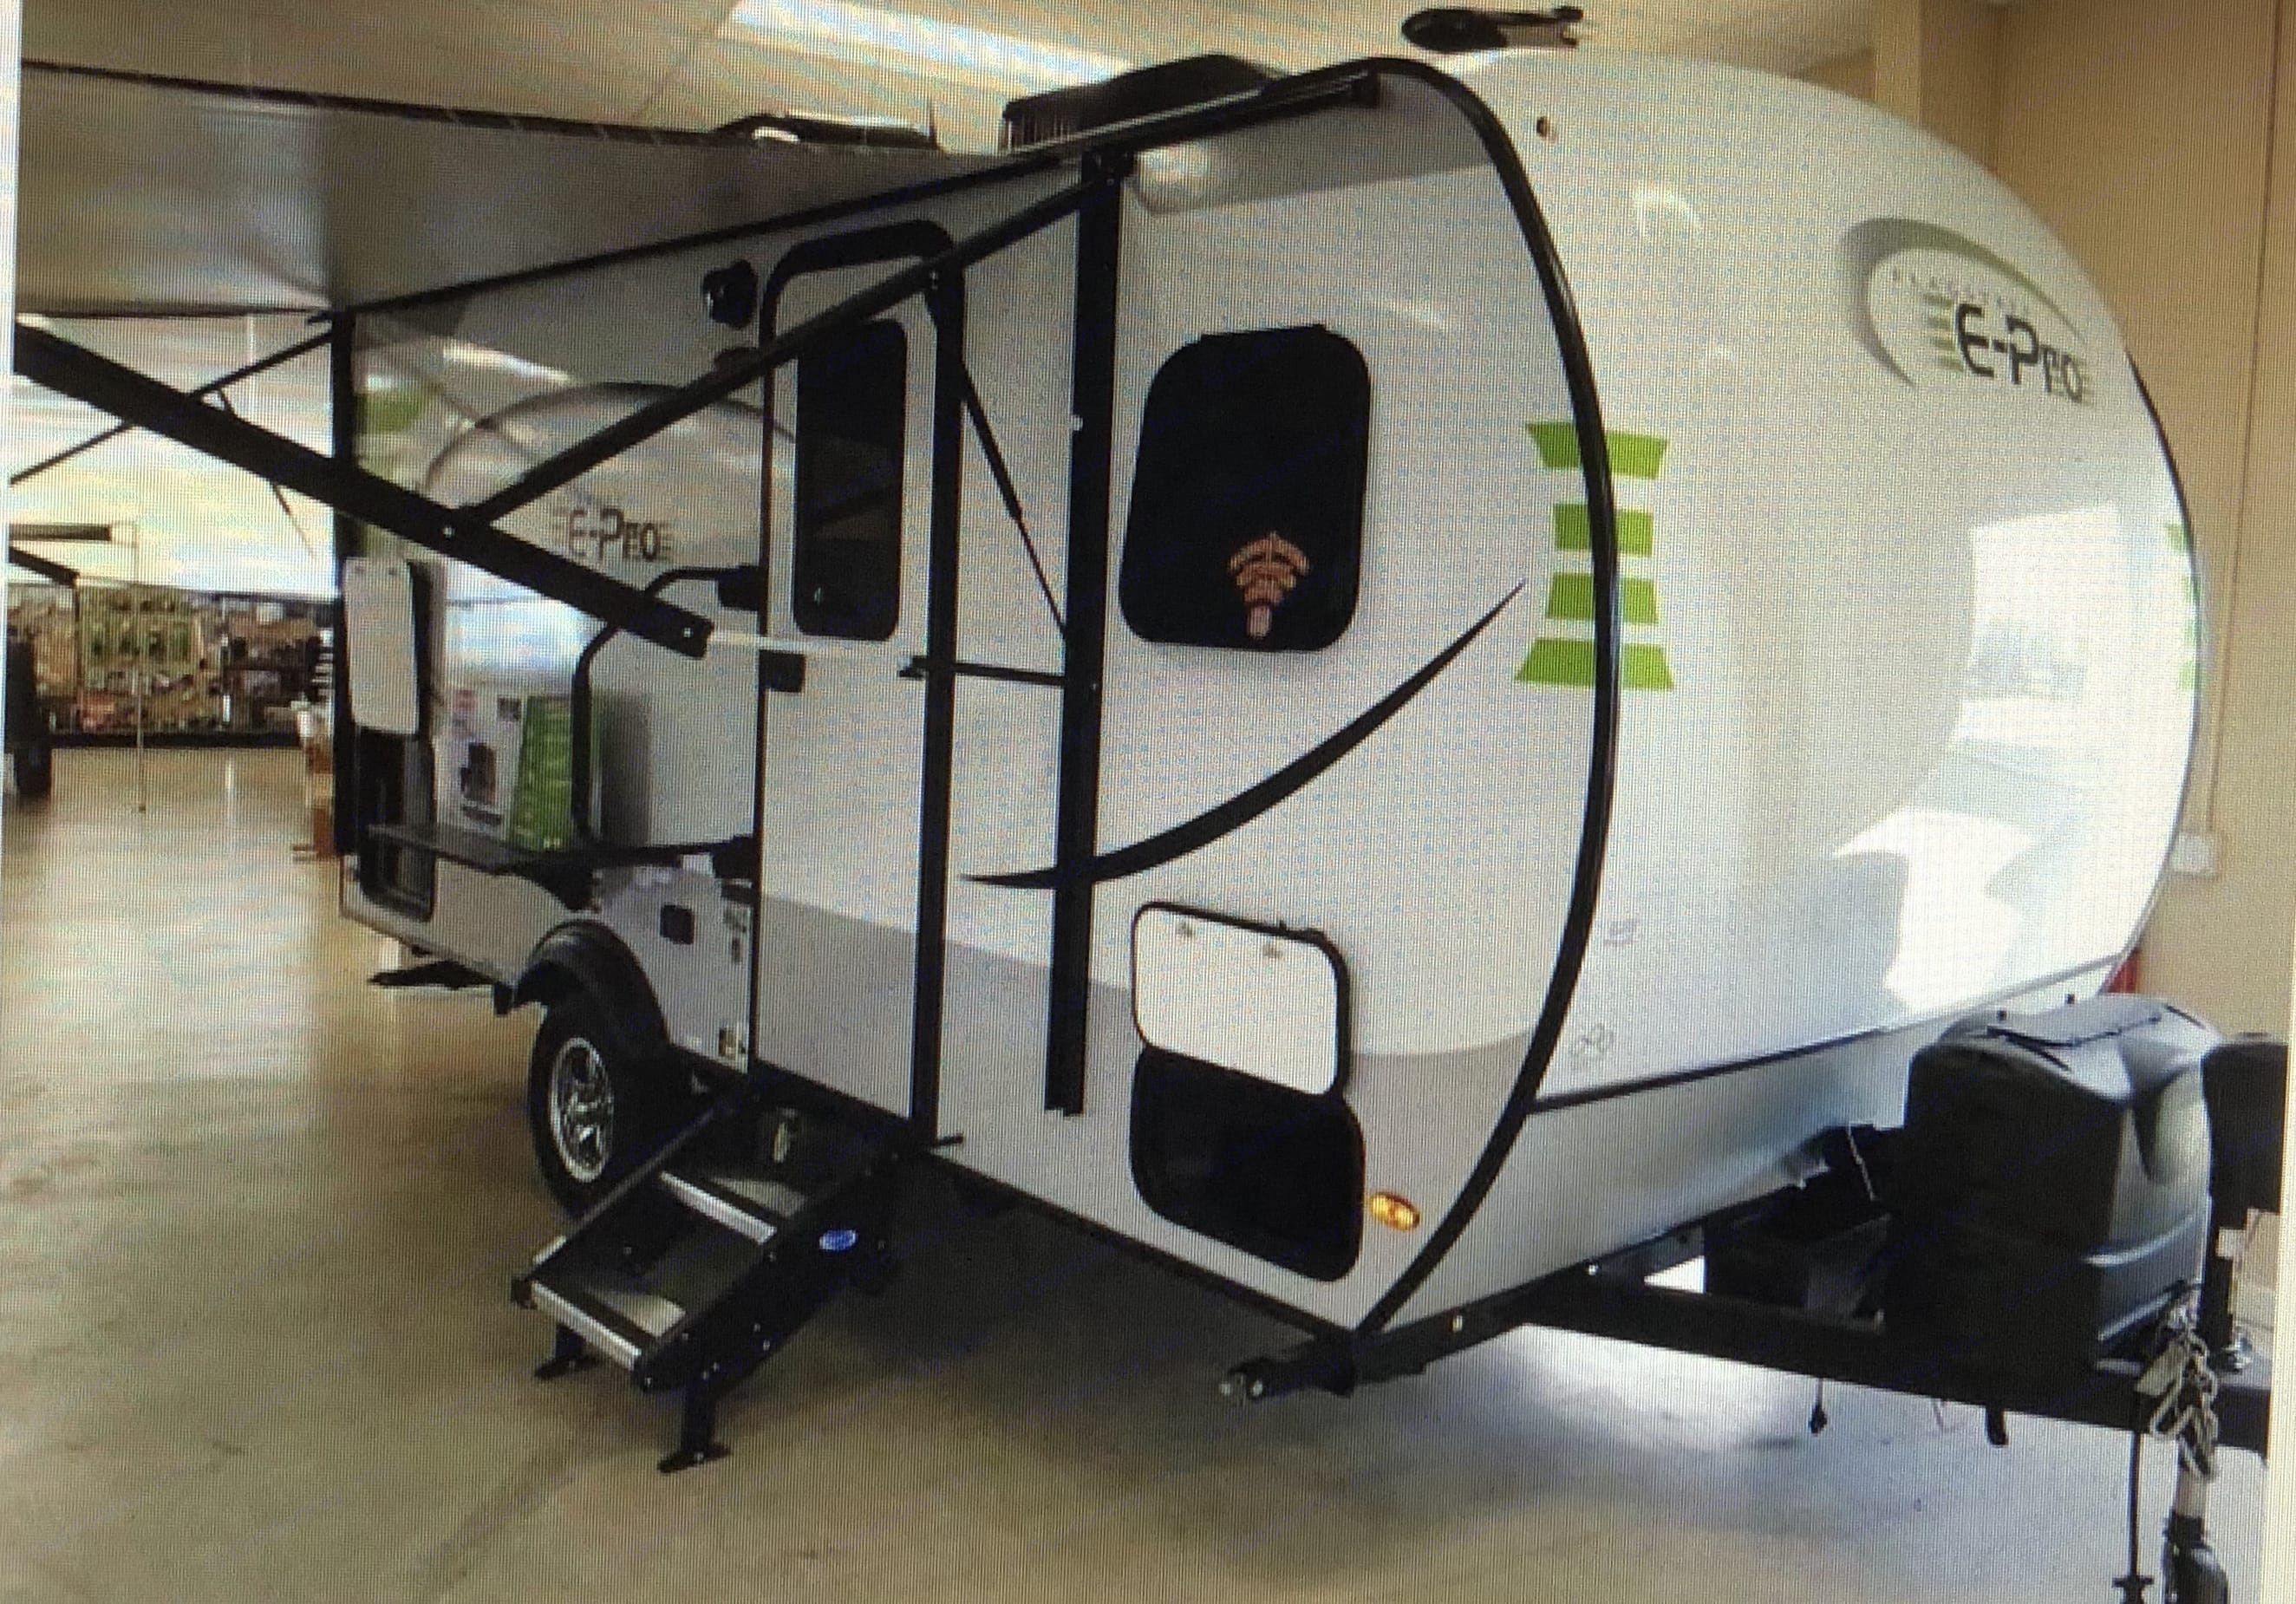 This awesome camper has an outdoor refrigerator and access to storage. There is a slide on table that holds a table top grill or a TV! We also had a bike rack installed!. Forest River Flagstaff E-pro E16 2018